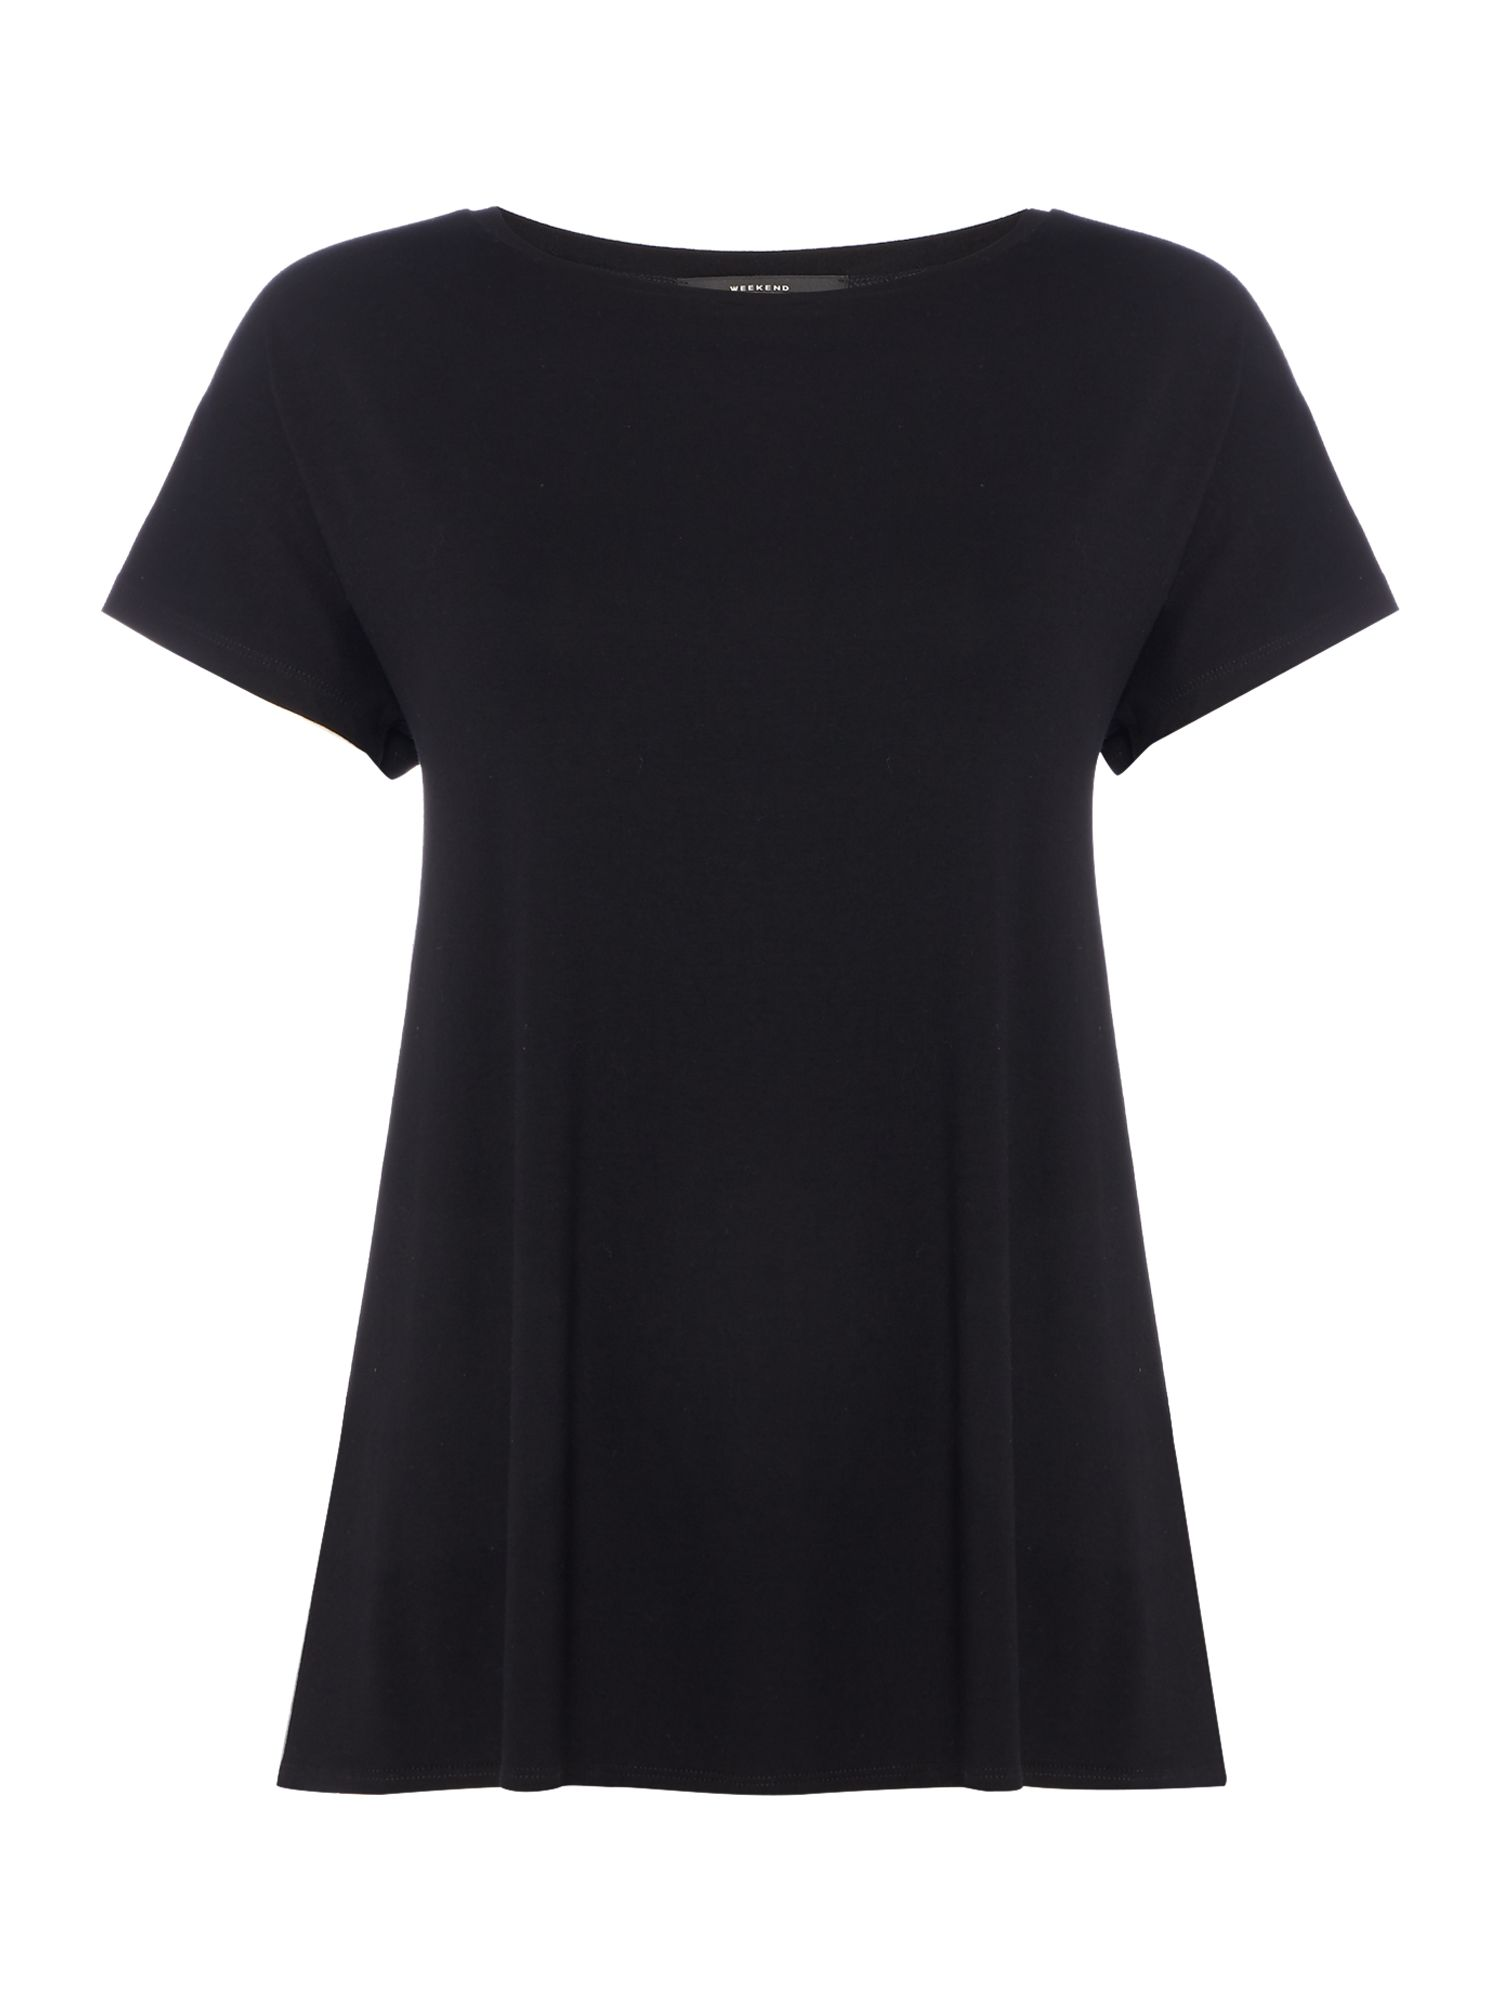 Max Mara Weekend Multia Plain Black Jersey Tee, Black